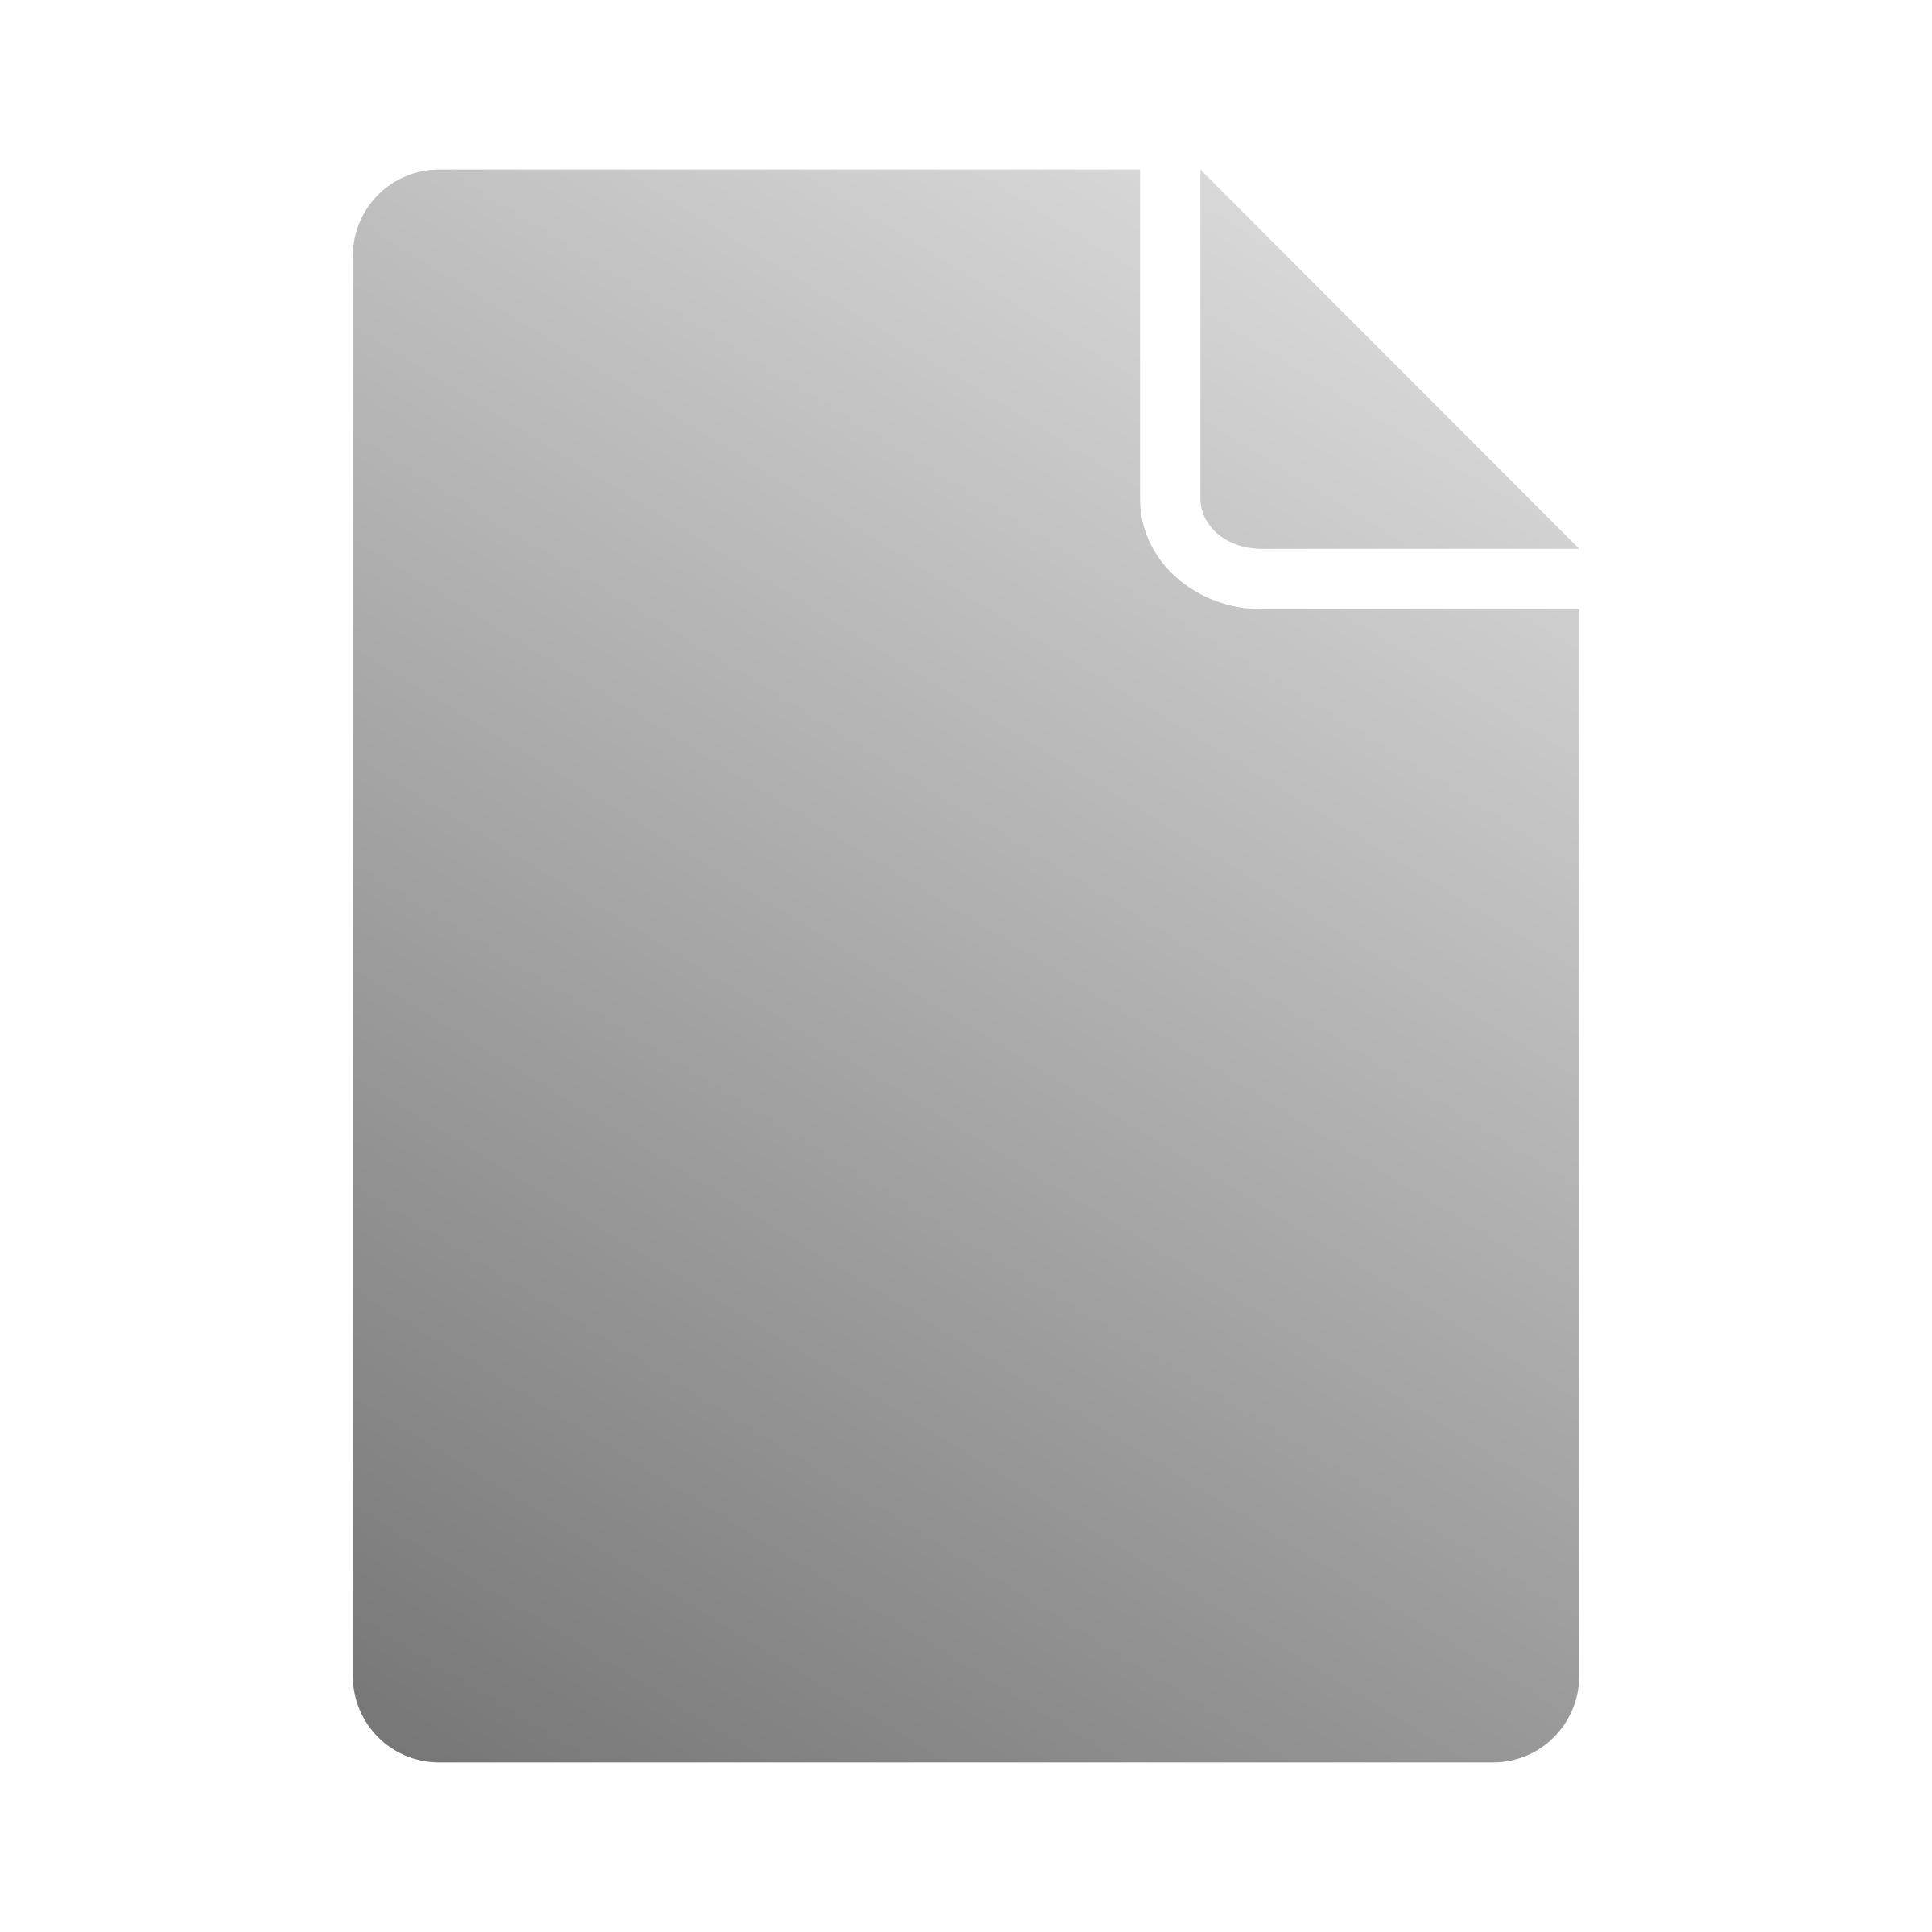 File Icon by kuba